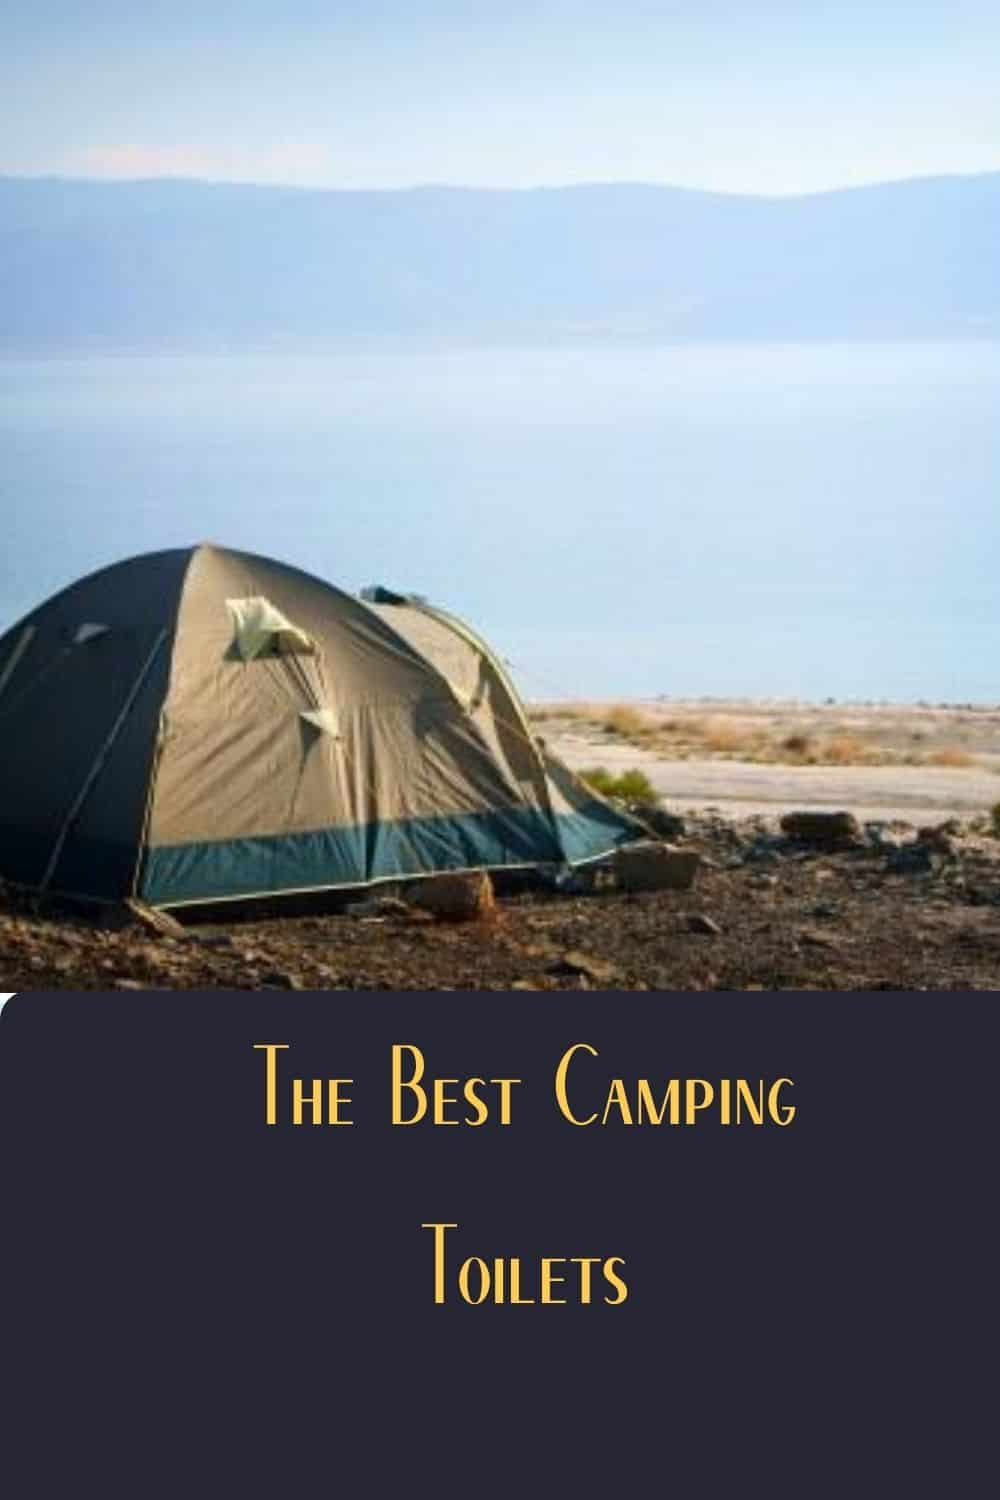 Pinterest image for The Best Camping Toilets